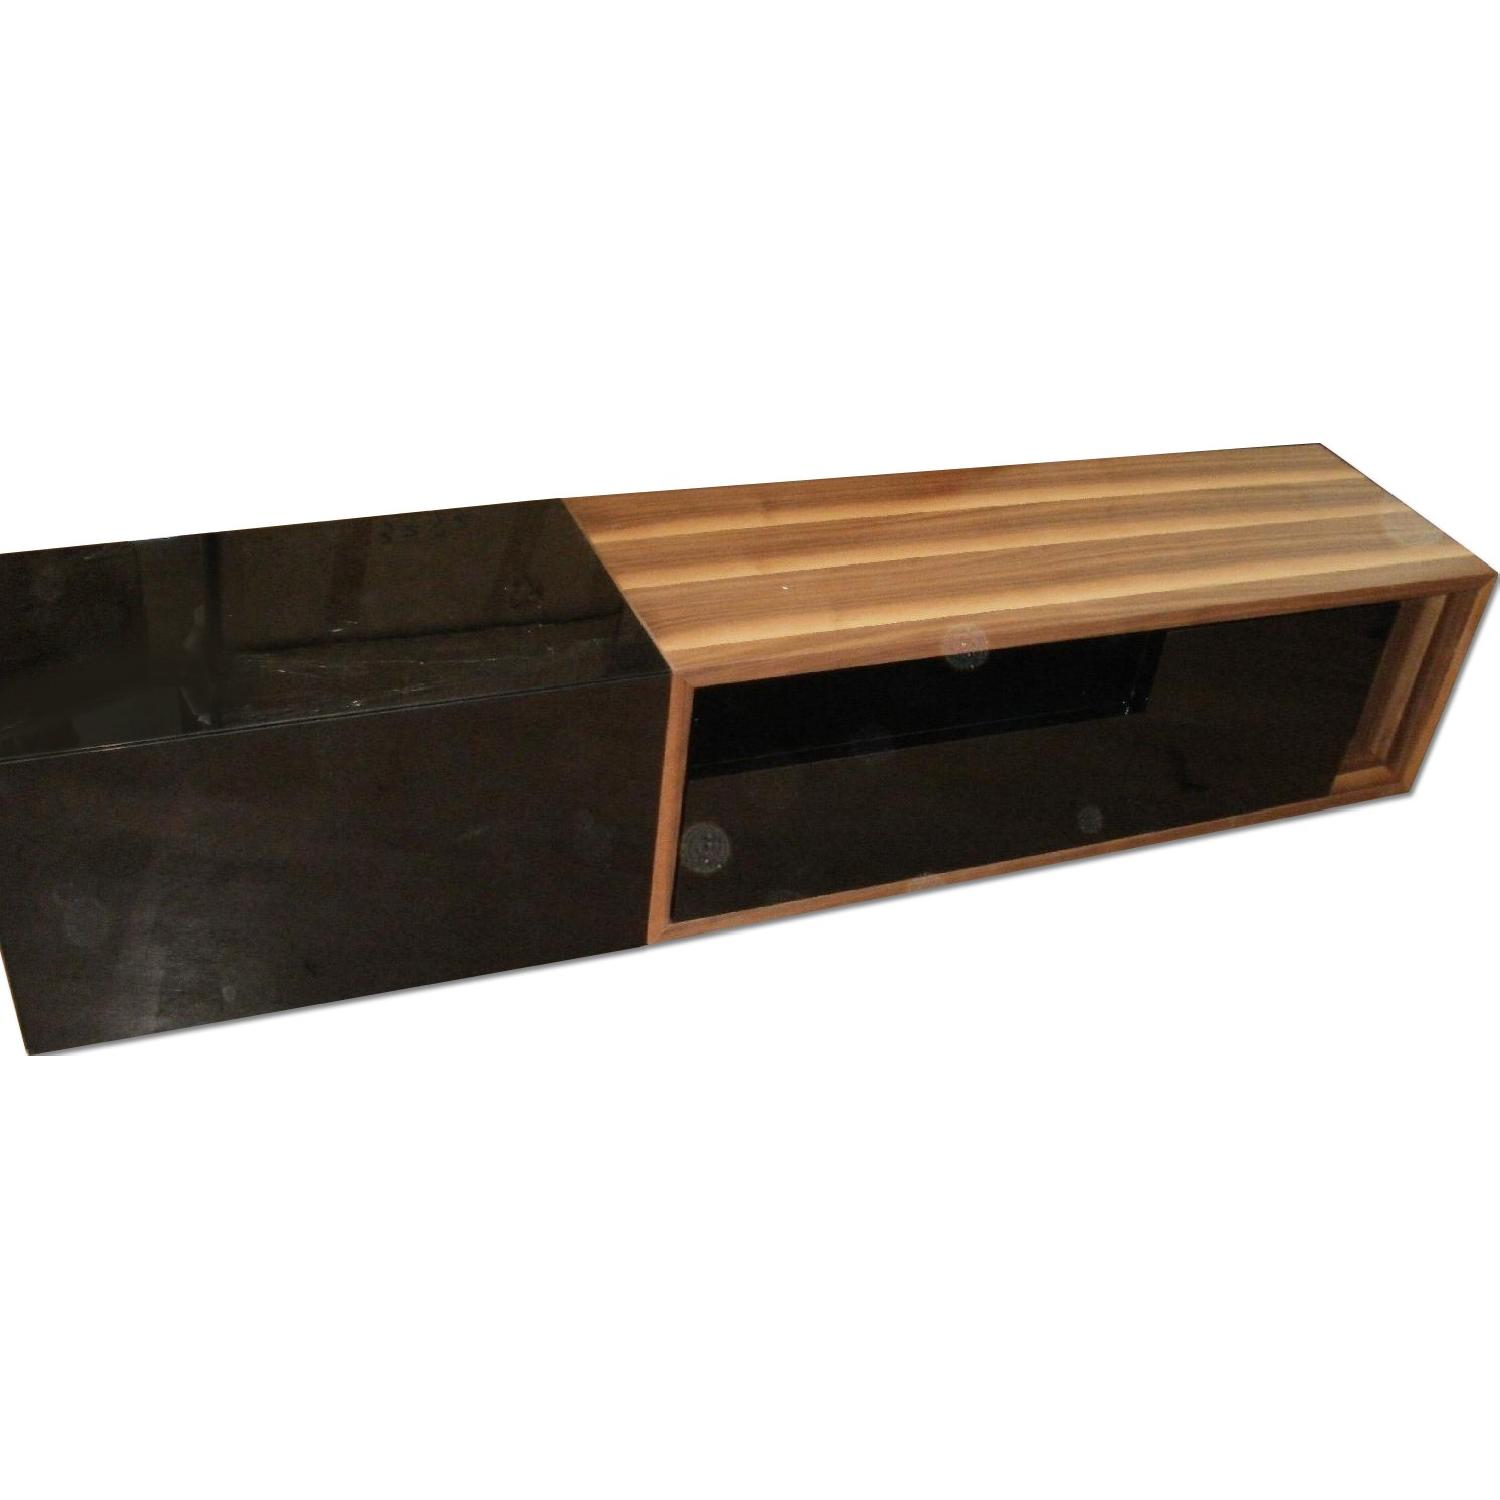 TV Stand w/ Walnut & Black Gloss Finish & Drawers - image-0